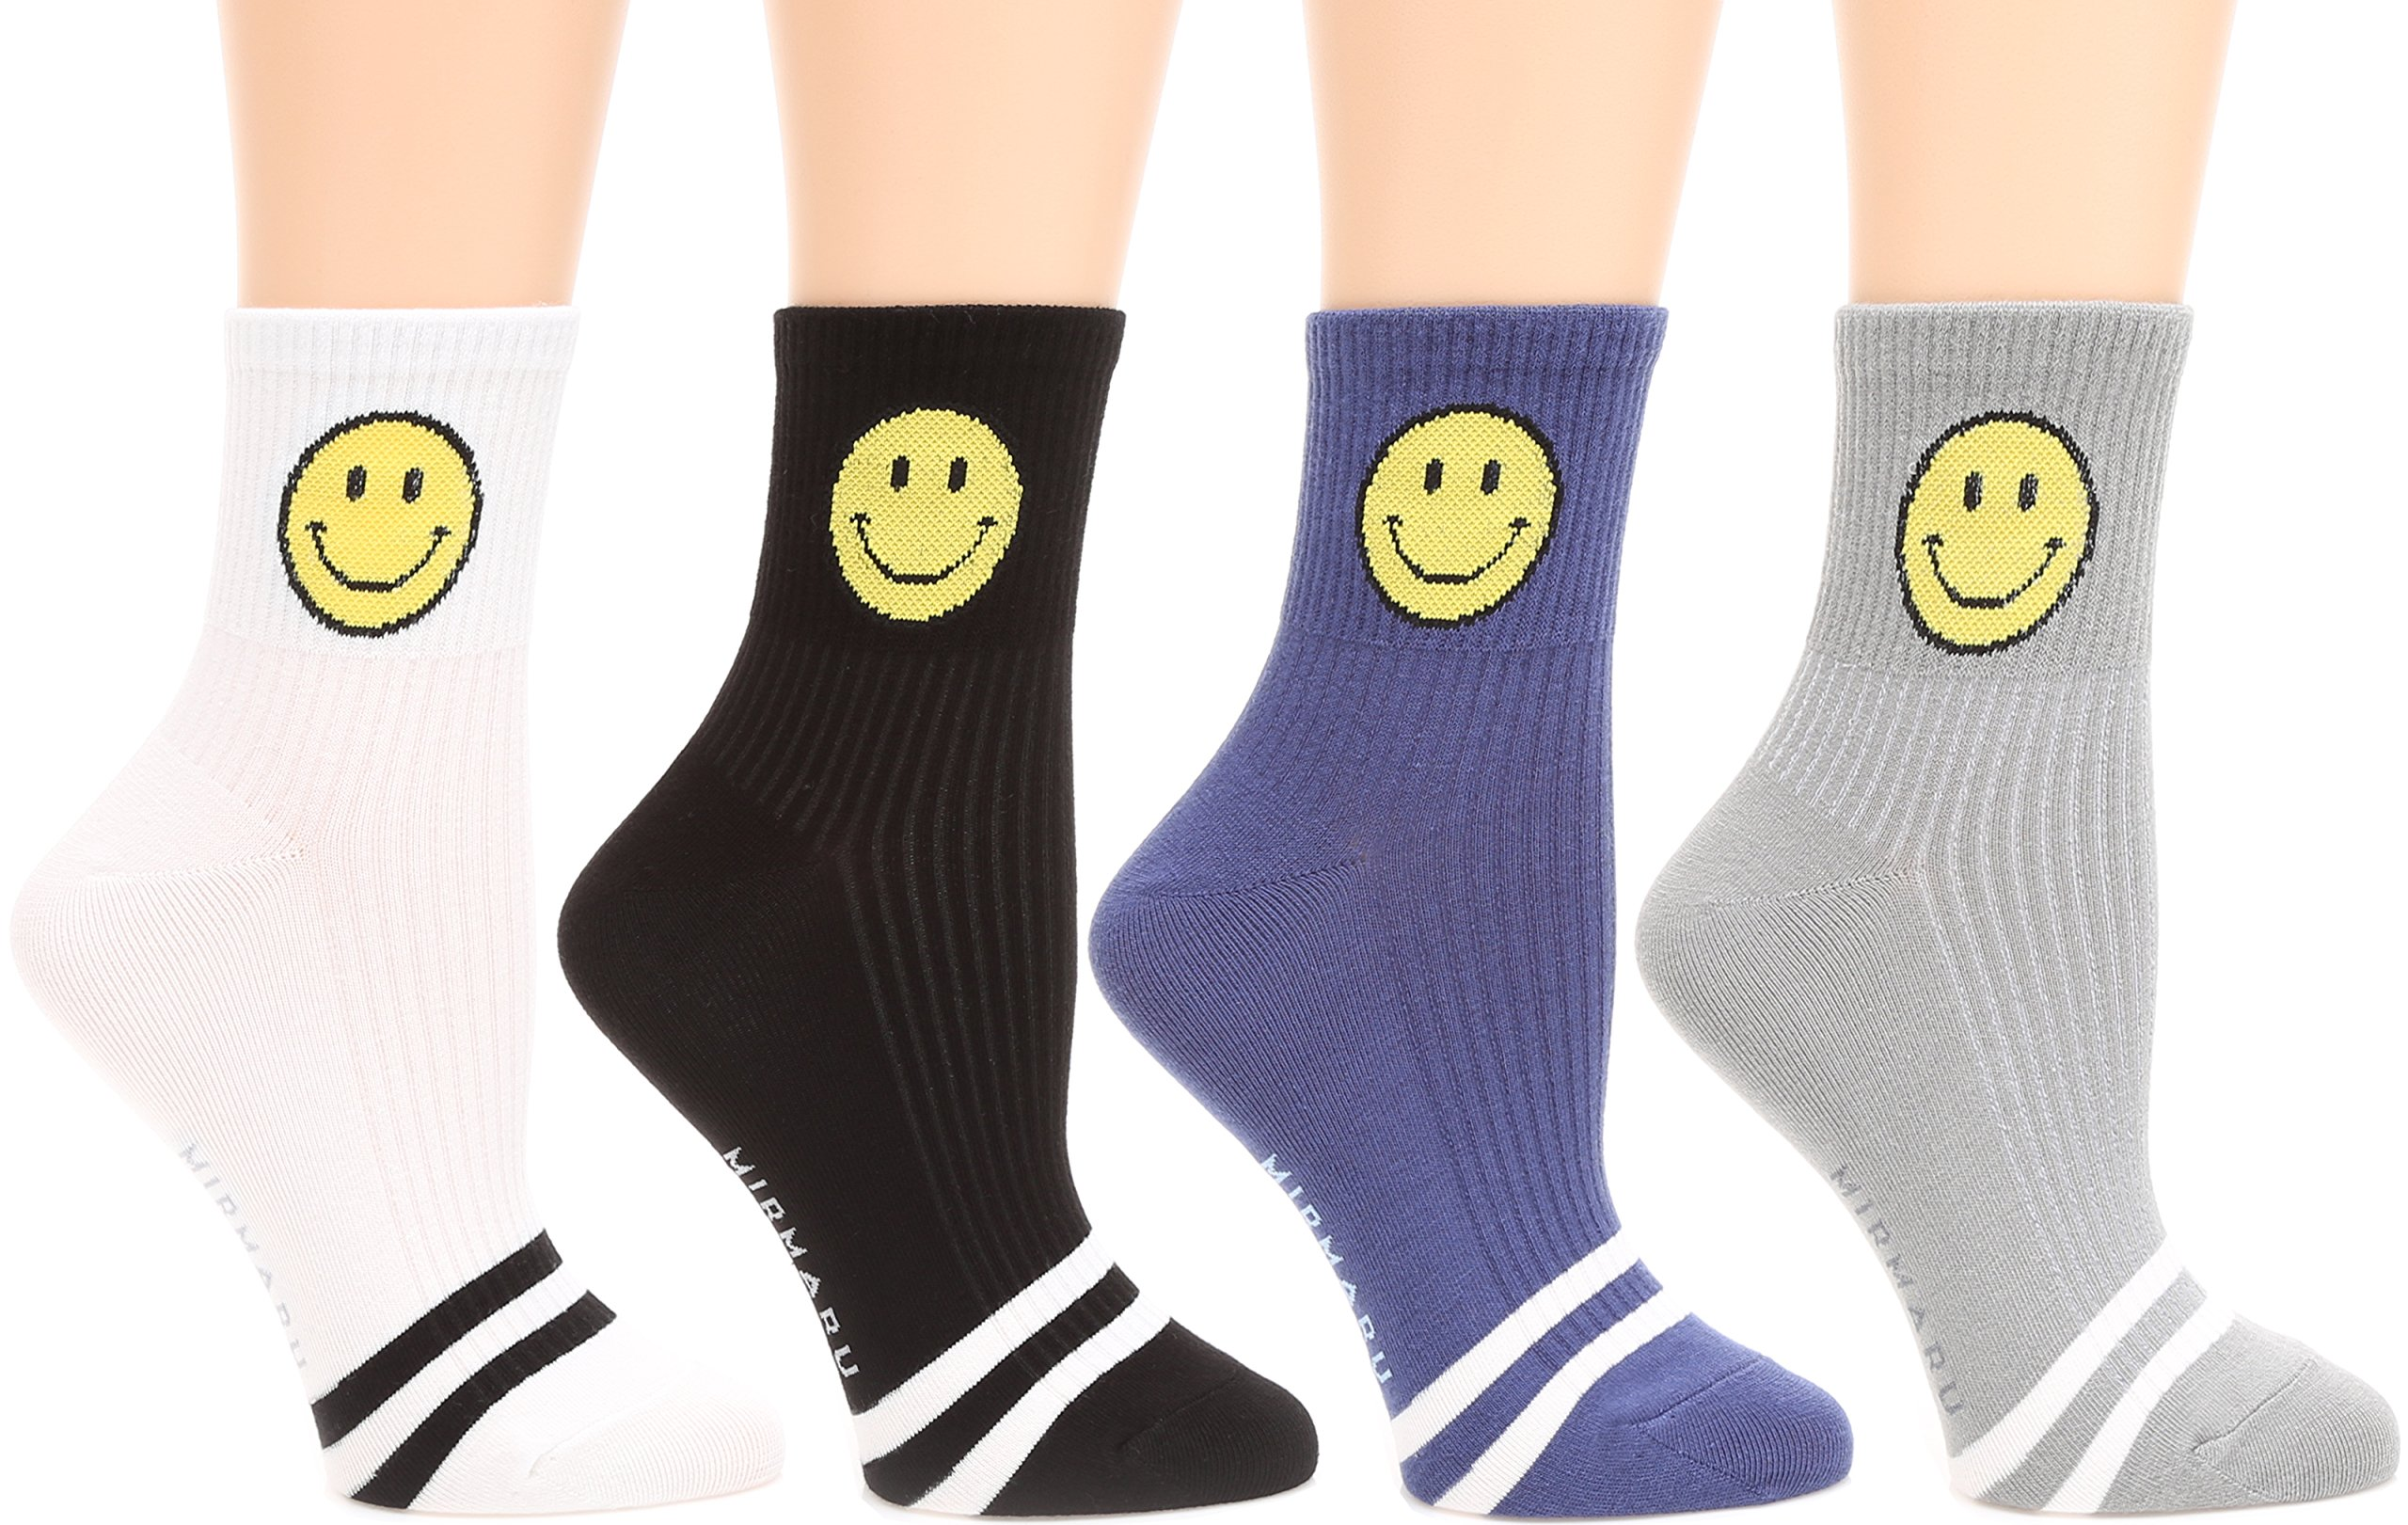 Women's 4 Pairs Novelty Crew Socks by MIRMARU | Colorful, Crazy, Funny, Casual, Famous Painting Art Printed Cotton Socks